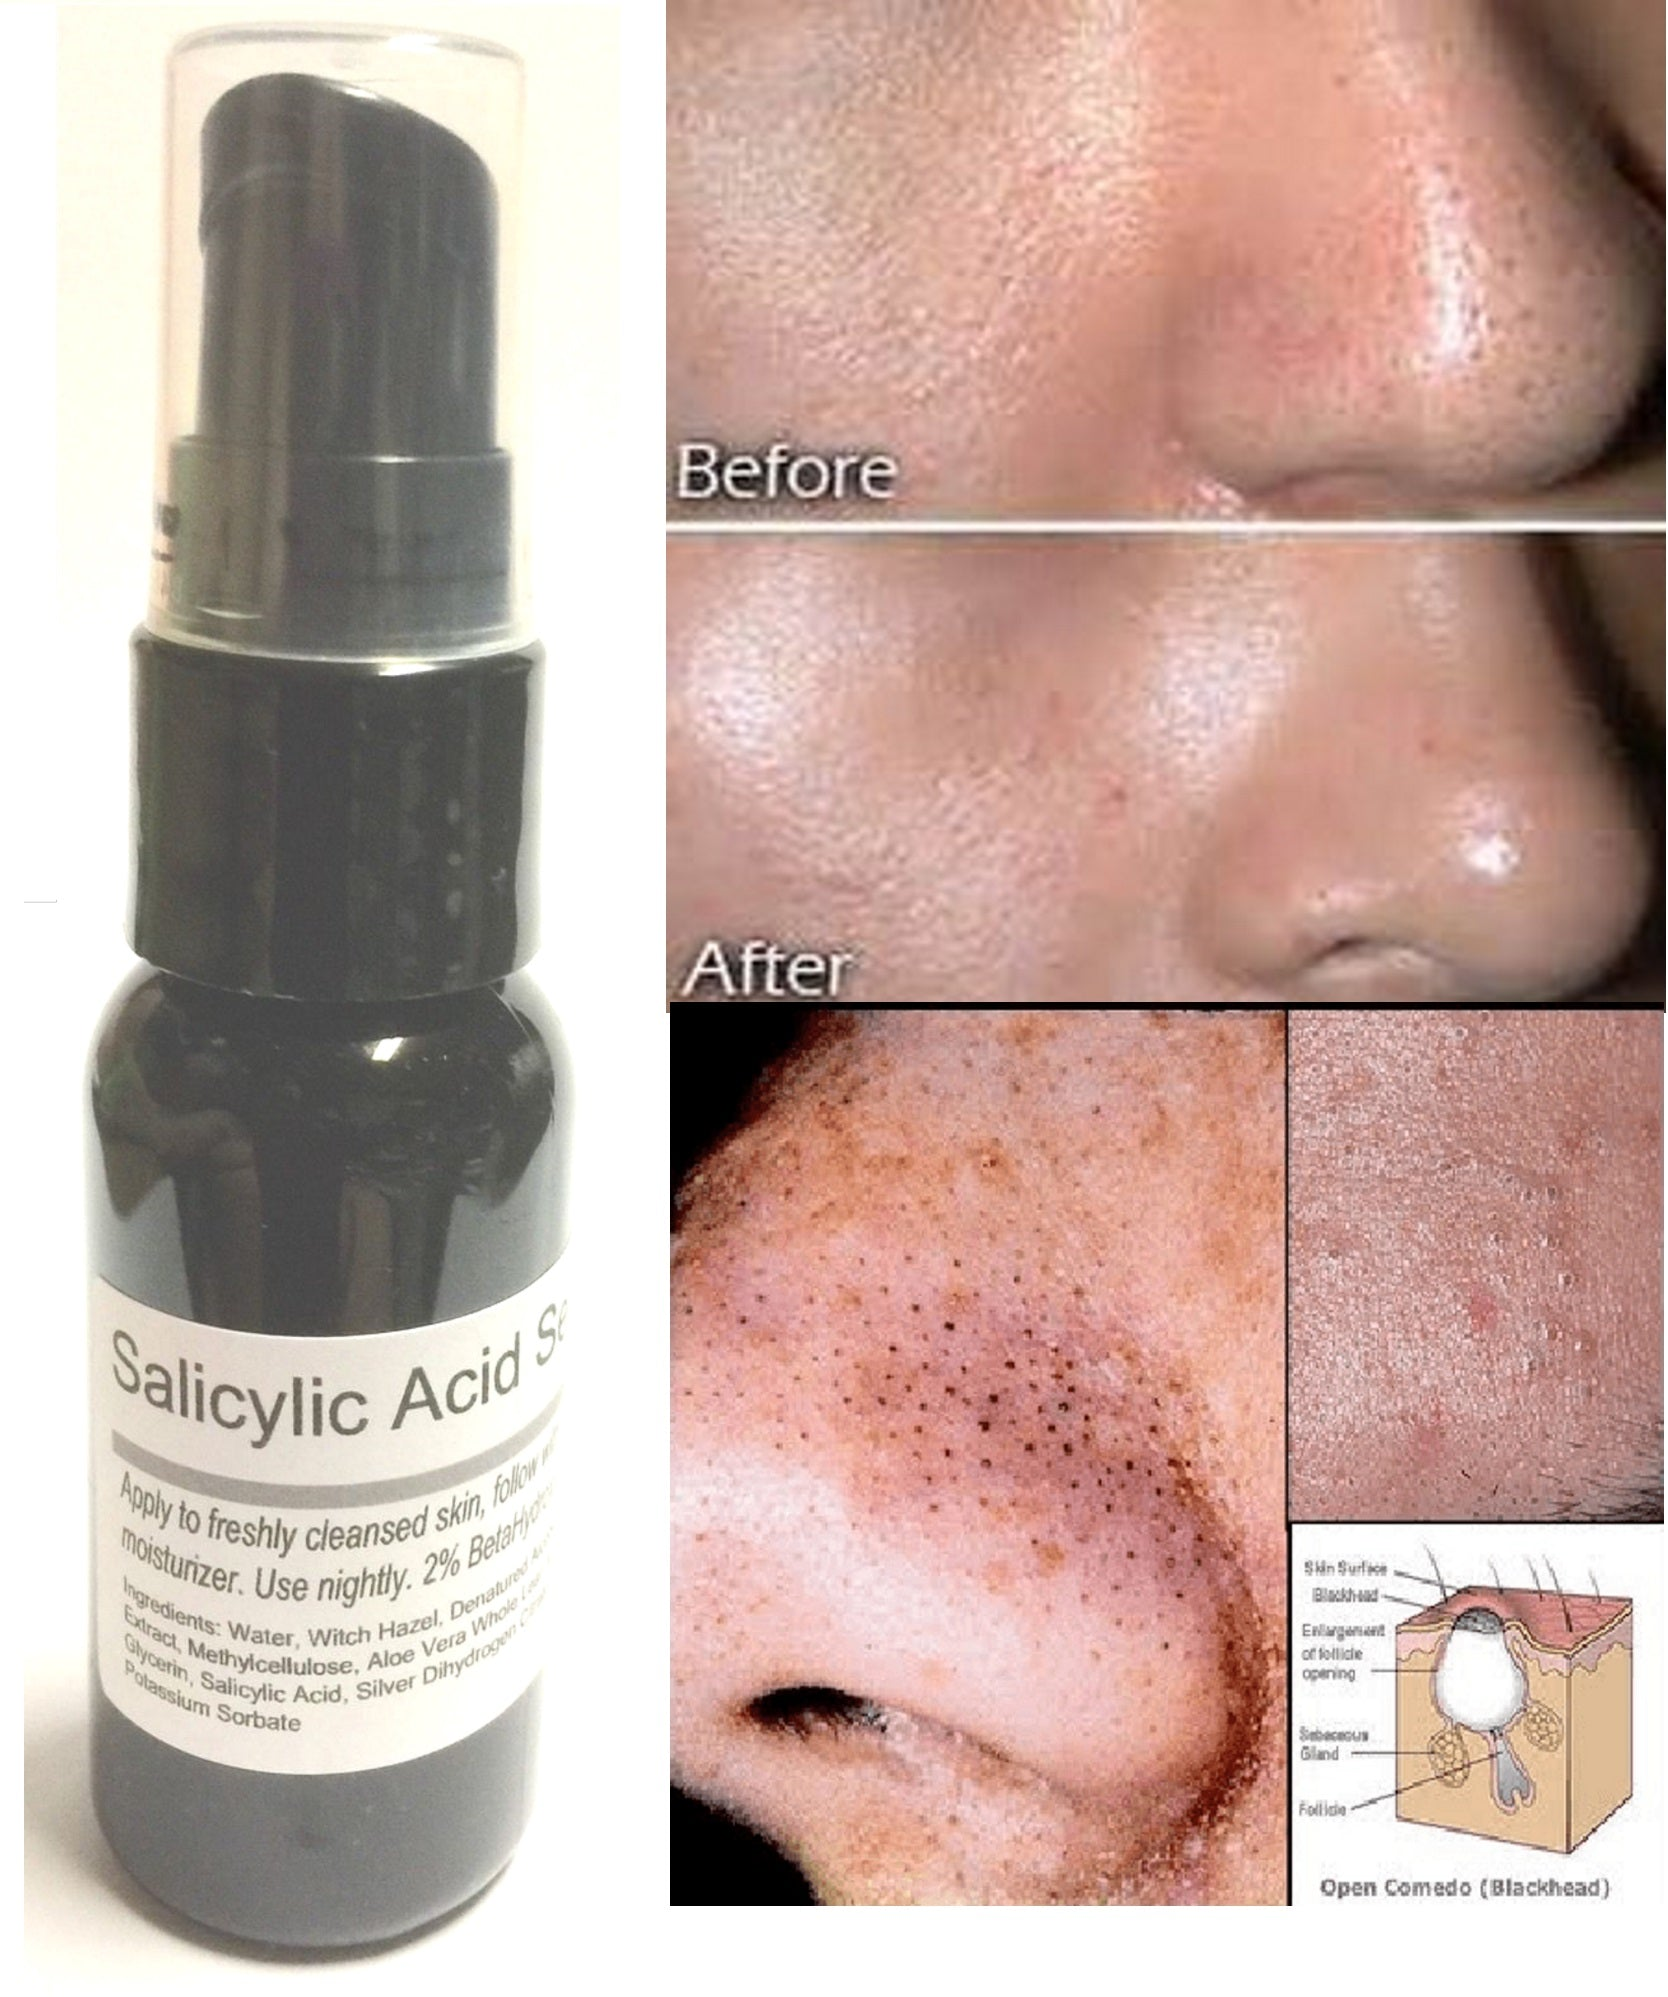 Salicylic Acid Serum 2% By ModelSupplies Eradicate Blackheads Clogged Pores Acne